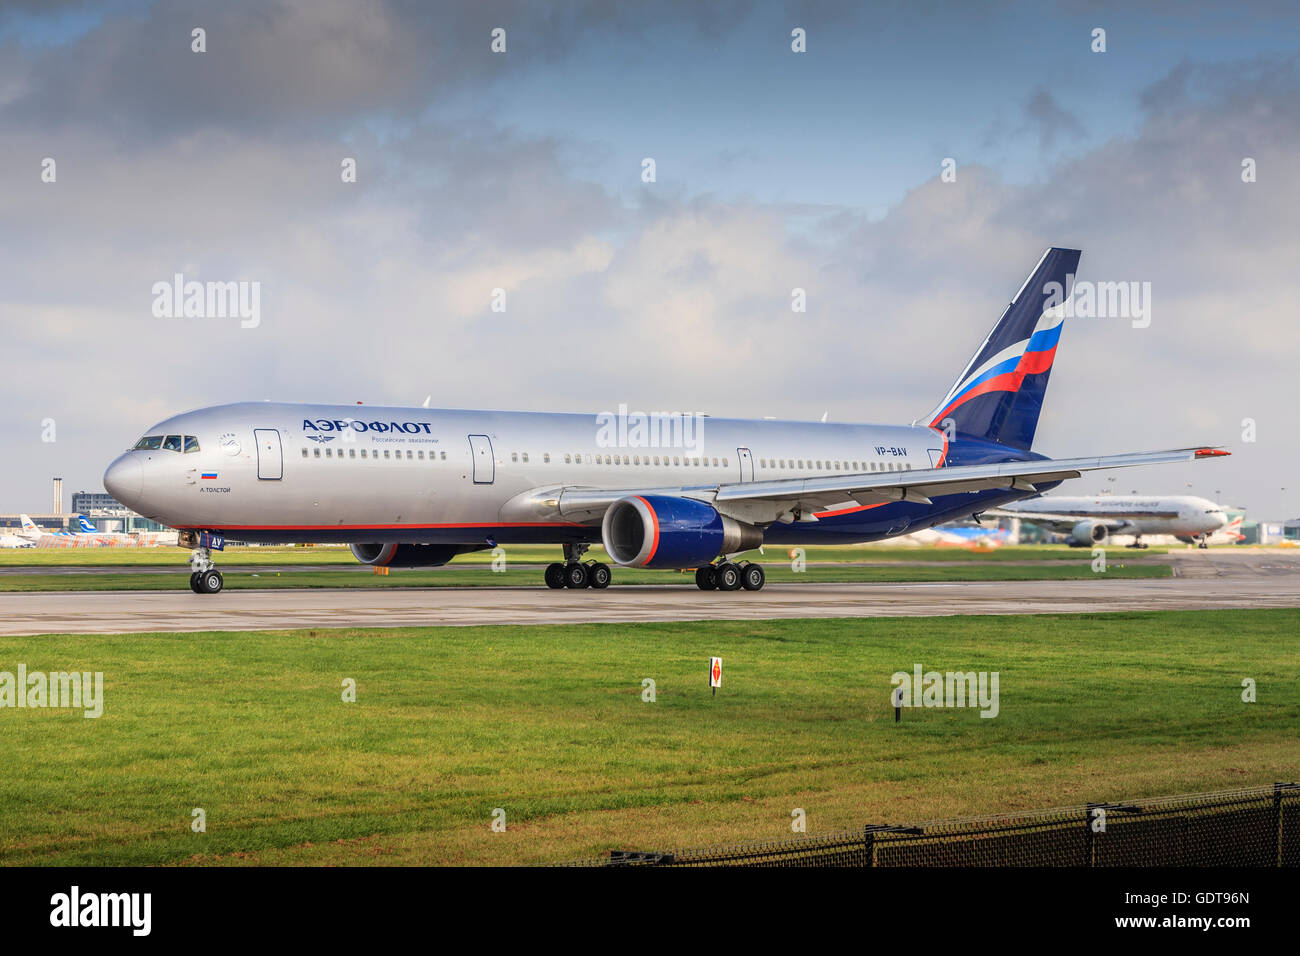 Aeroflot Boeing taxing at MAN airport Manchester,England,United Kingdom - Stock Image